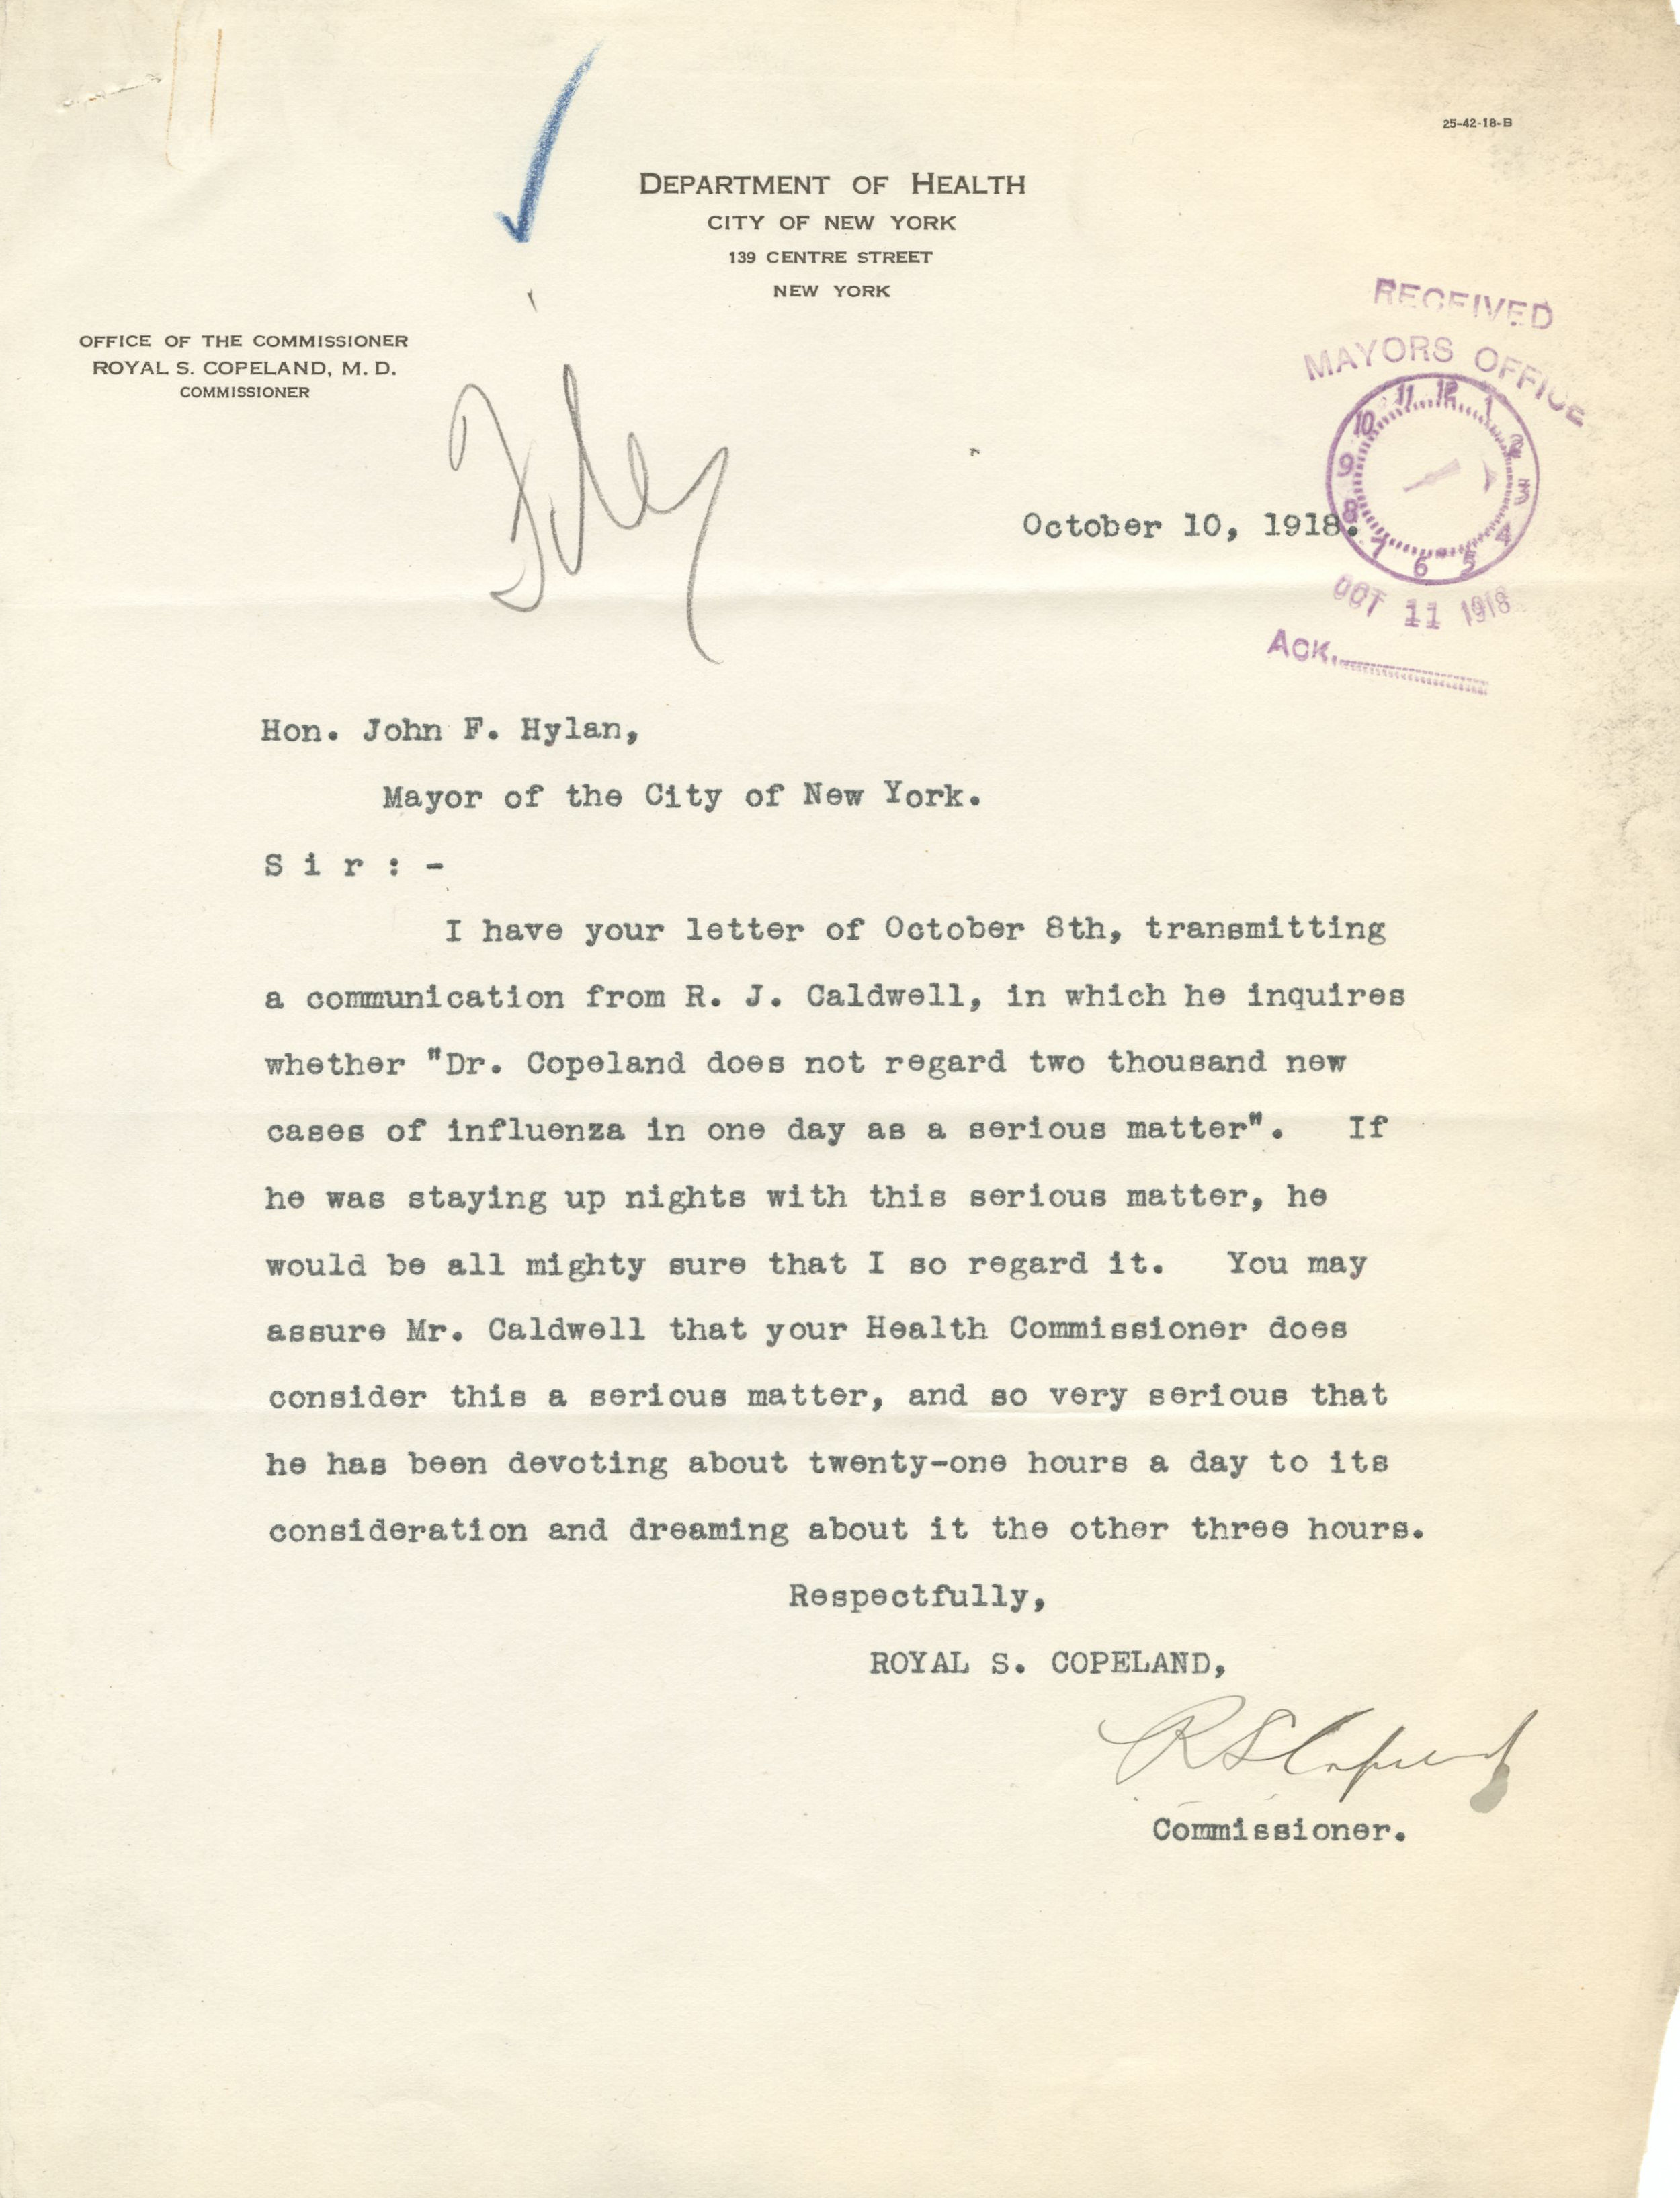 Letter from Dept. of Health Commissioner Copeland to Mayor Hylan, October 10, 1918. Mayor Hylan Papers, NYC Municipal Archives.